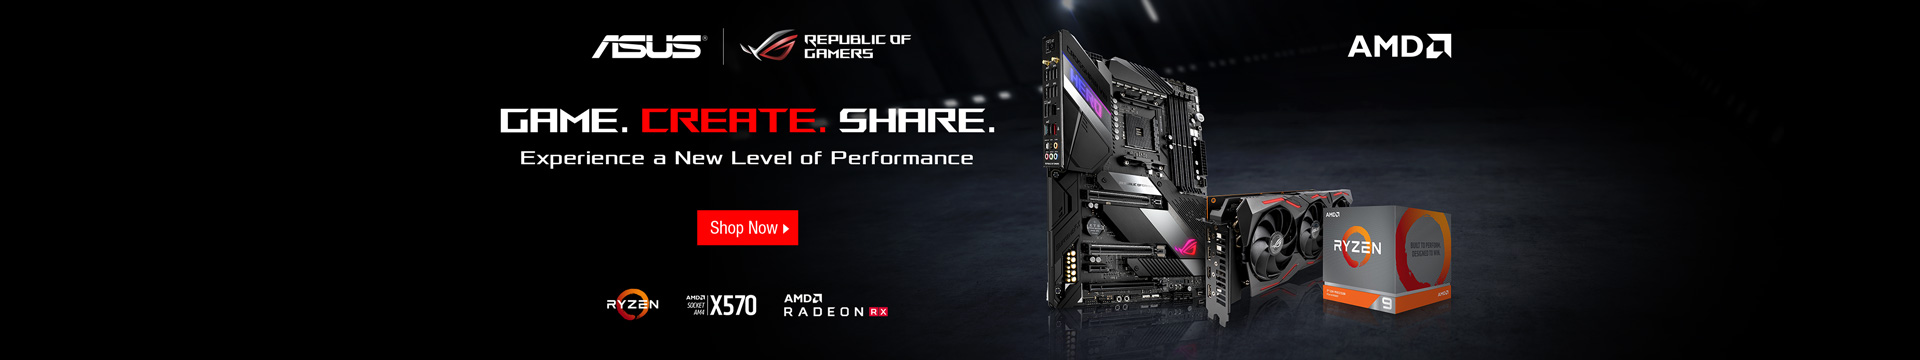 ASUS Game.Create.Share